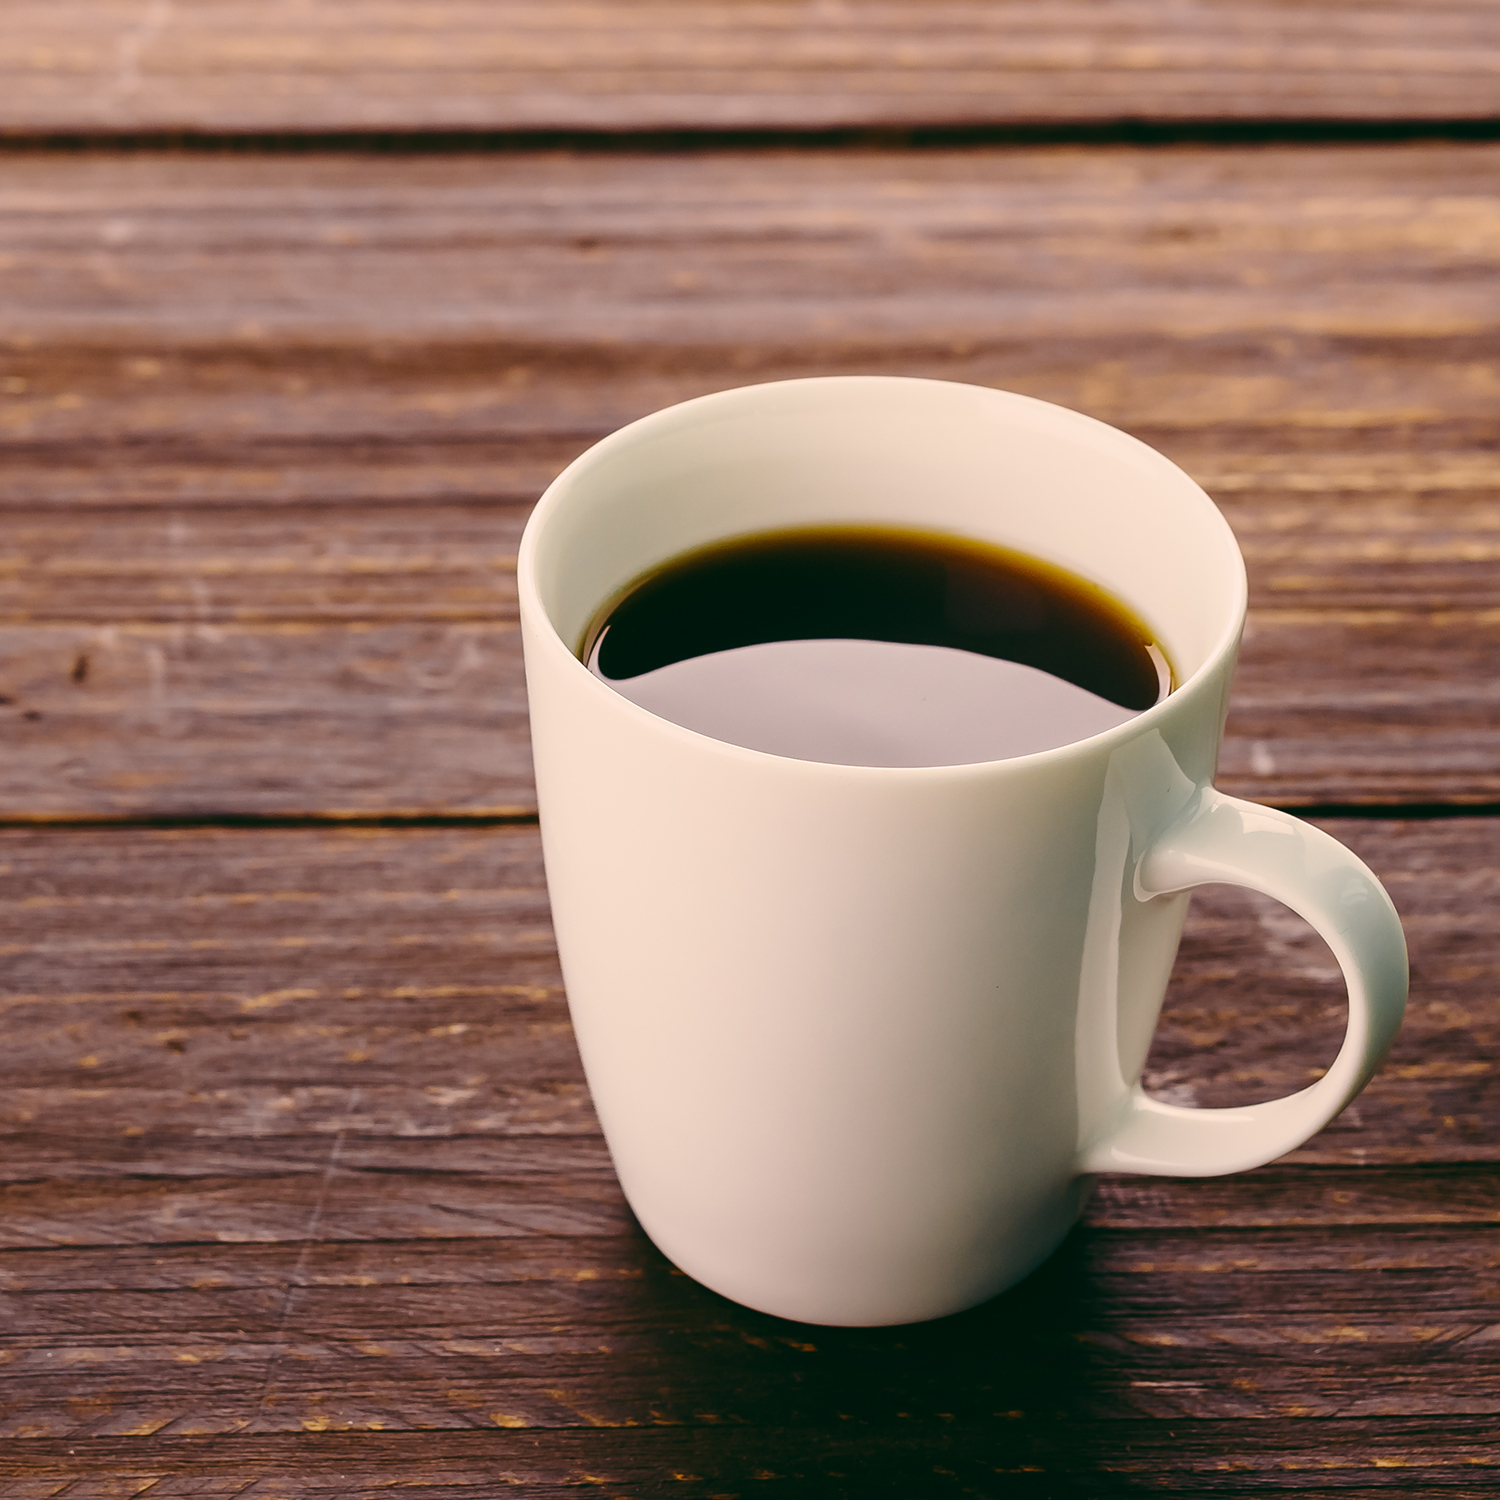 coffee_thinkstockphotos-530086313_square.jpg